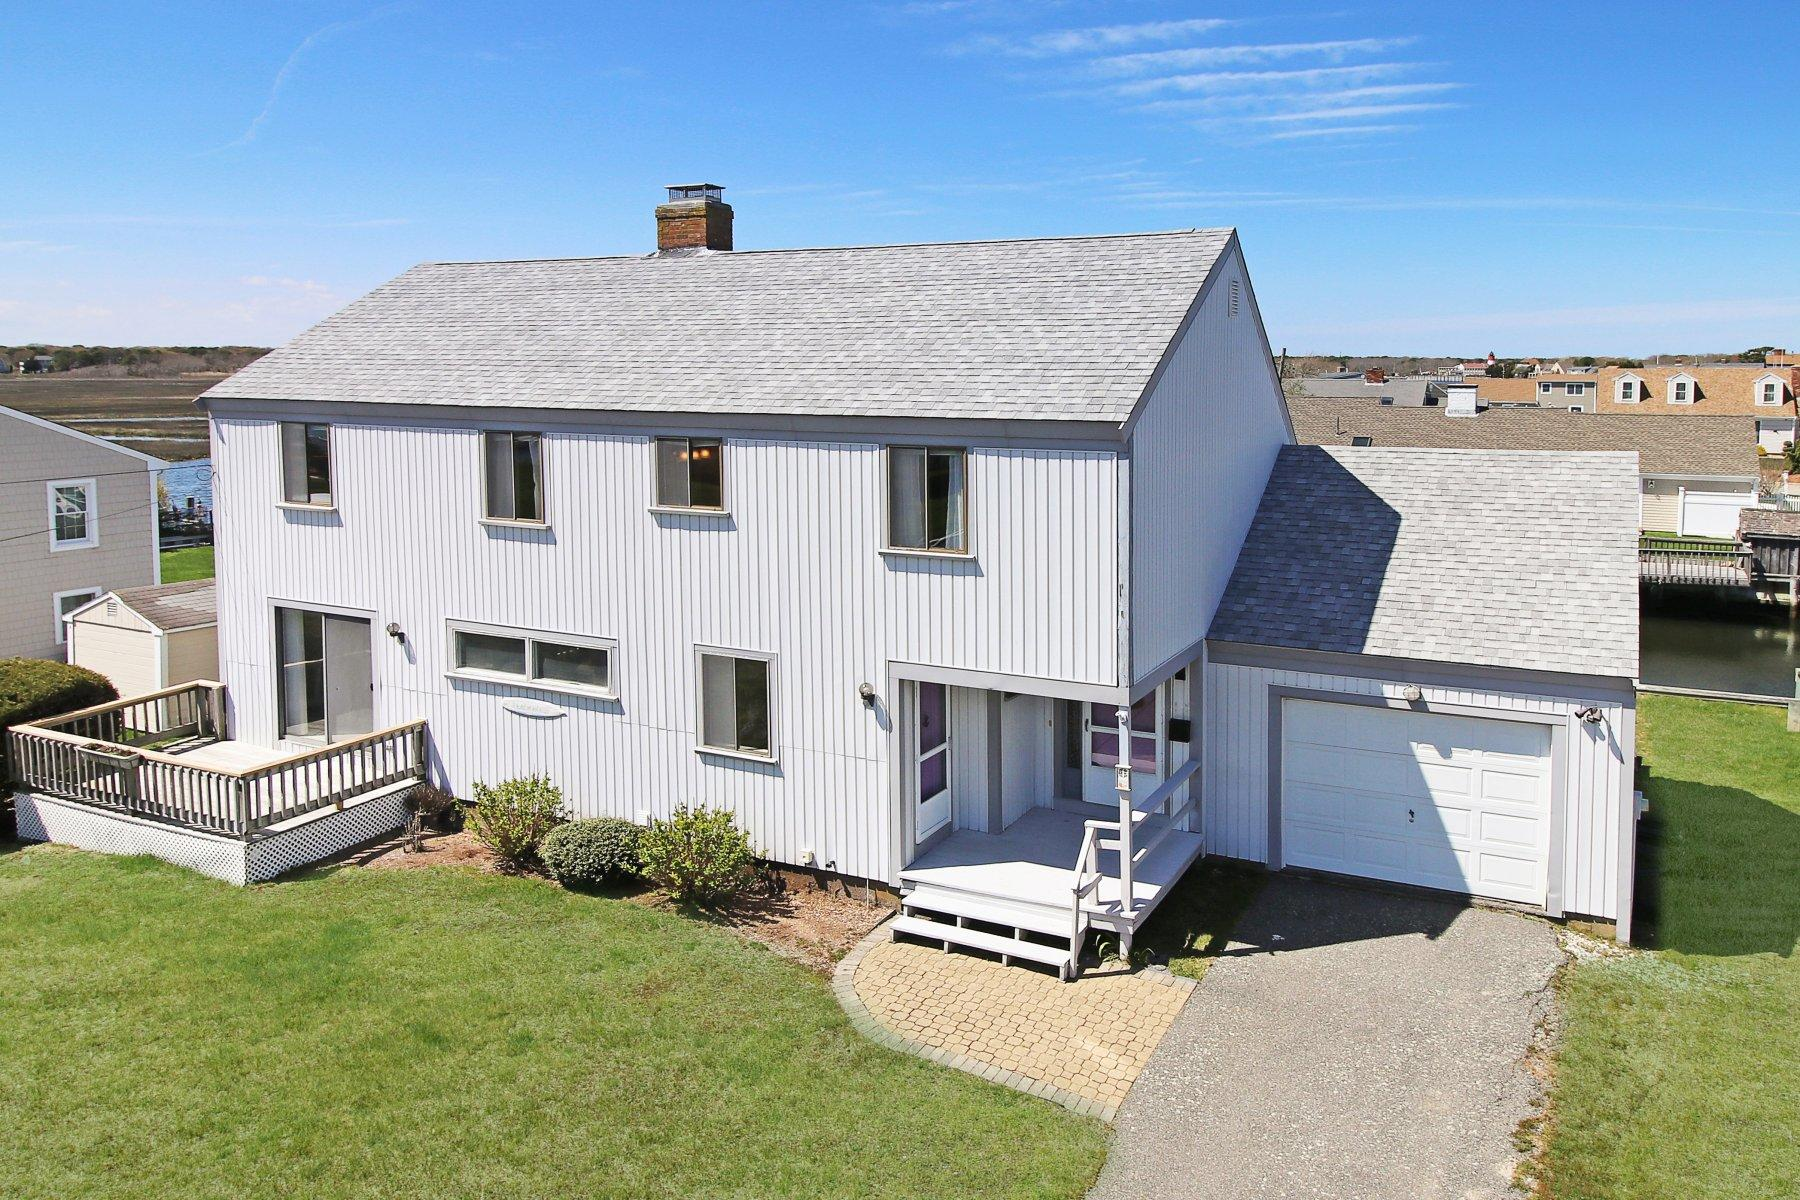 Single Family Home for Active at 6 Compass Drive, Yarmouth, MA 6 Compass Drive Yarmouth, Massachusetts 02664 United States